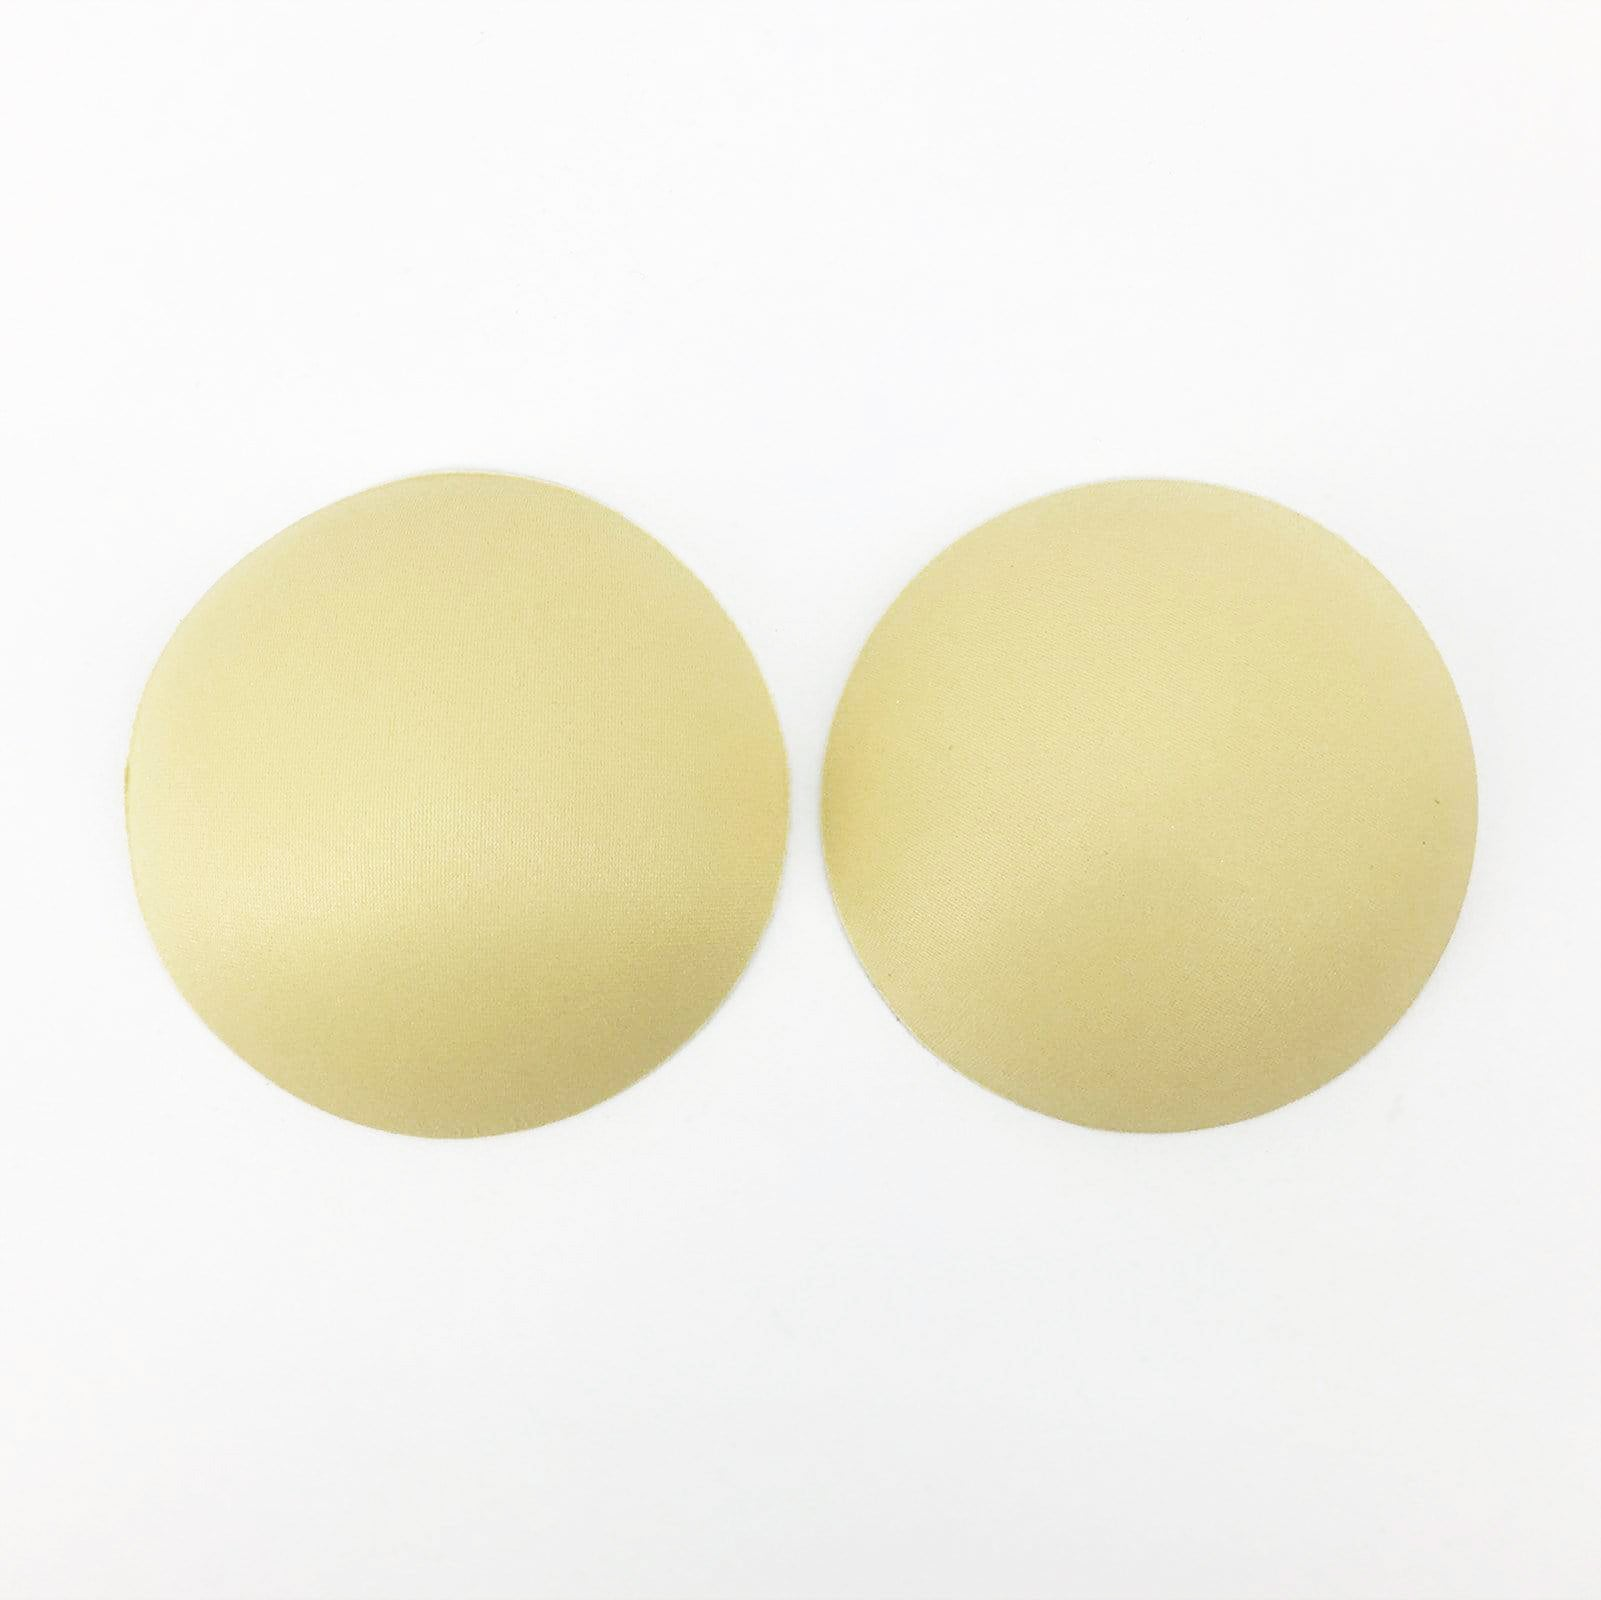 Circular Bra Paddings Inserts In Beige